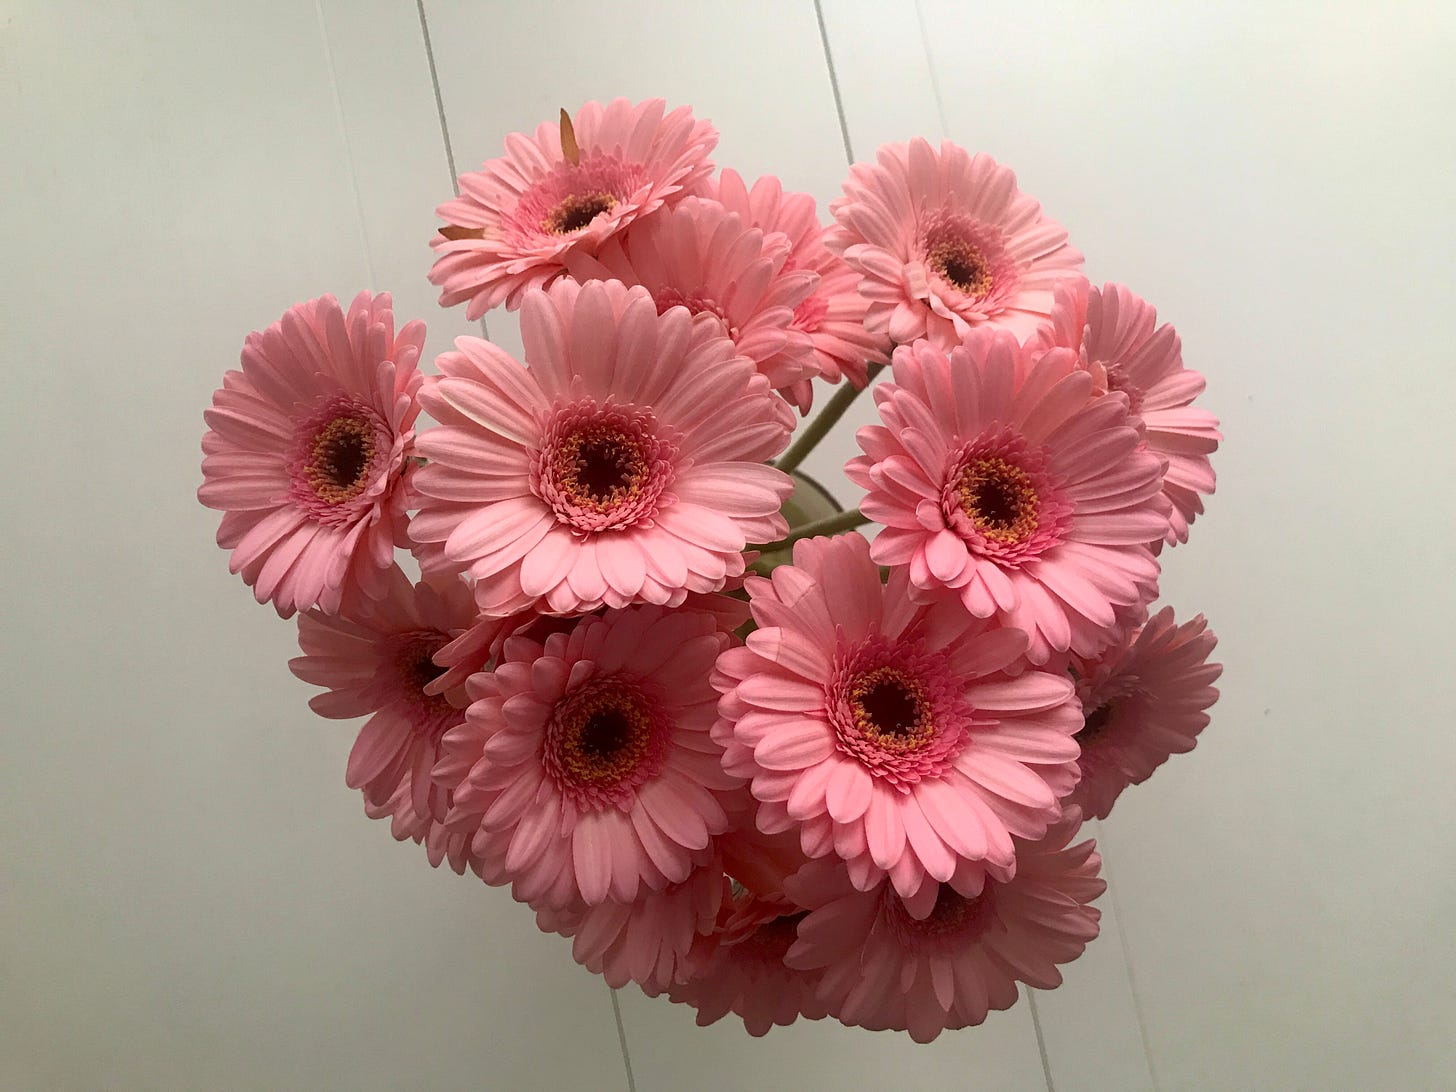 A direct overhead view of a bouquet of large pink daisies in a vase on a white table